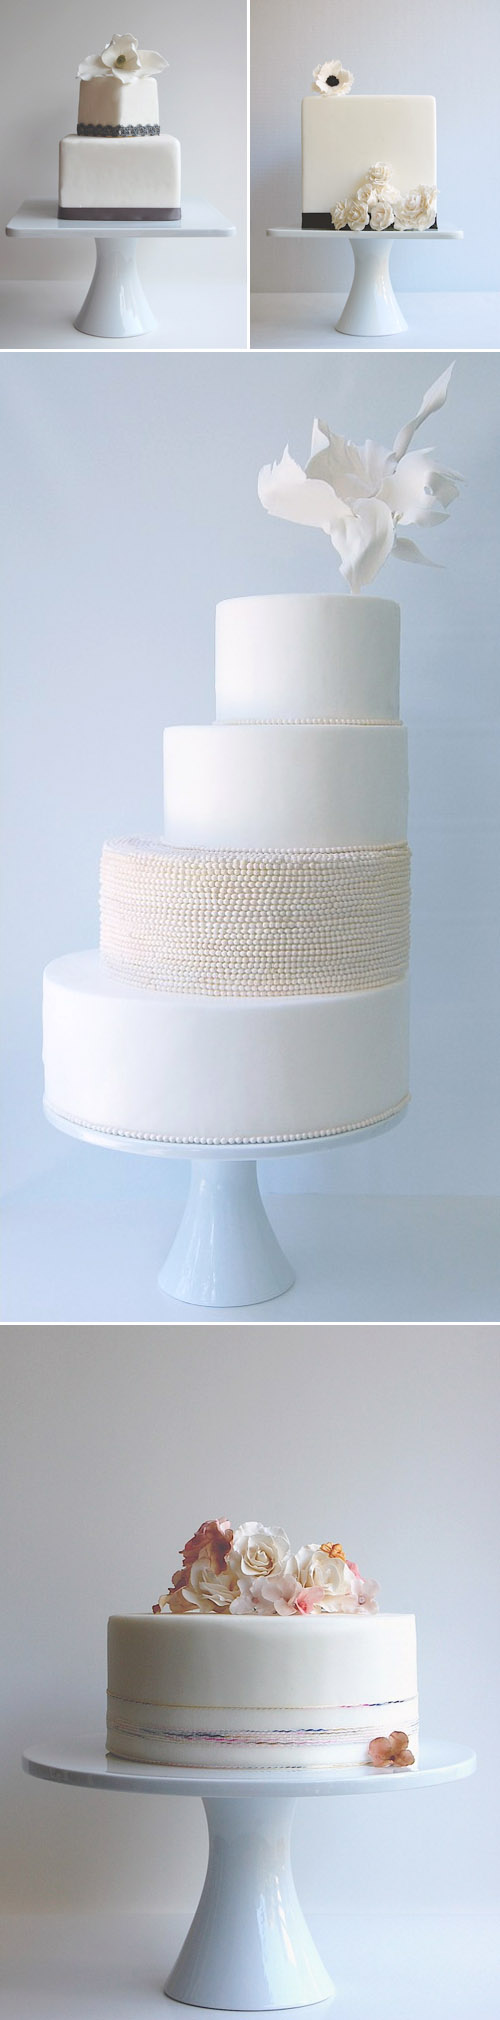 elegant, couture wedding cakes from Maggie Austin Cakes, Washington, D.C.